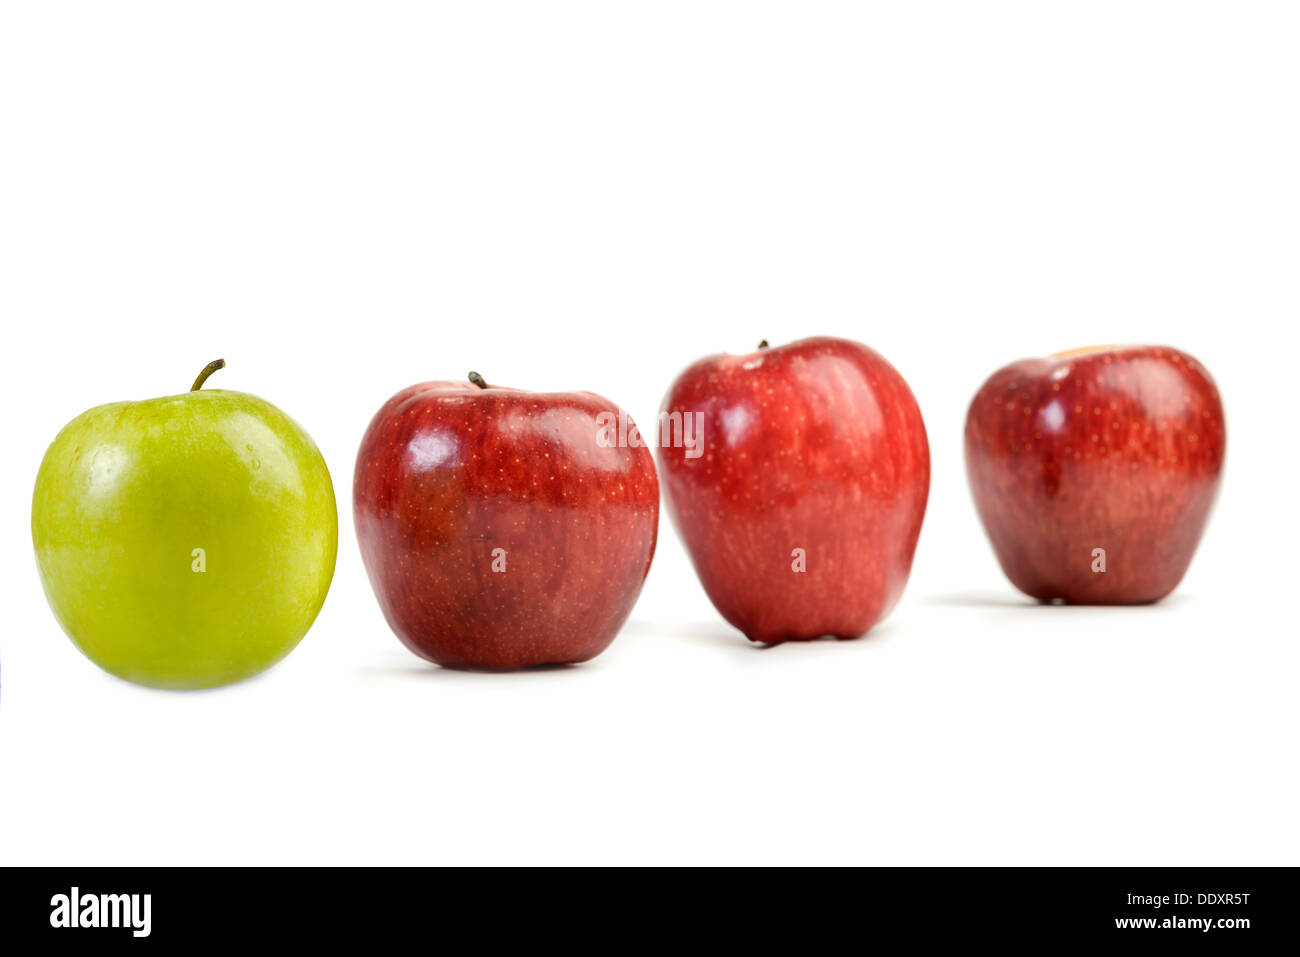 Ripe red apples and one green apple isolated on white - Stock Image